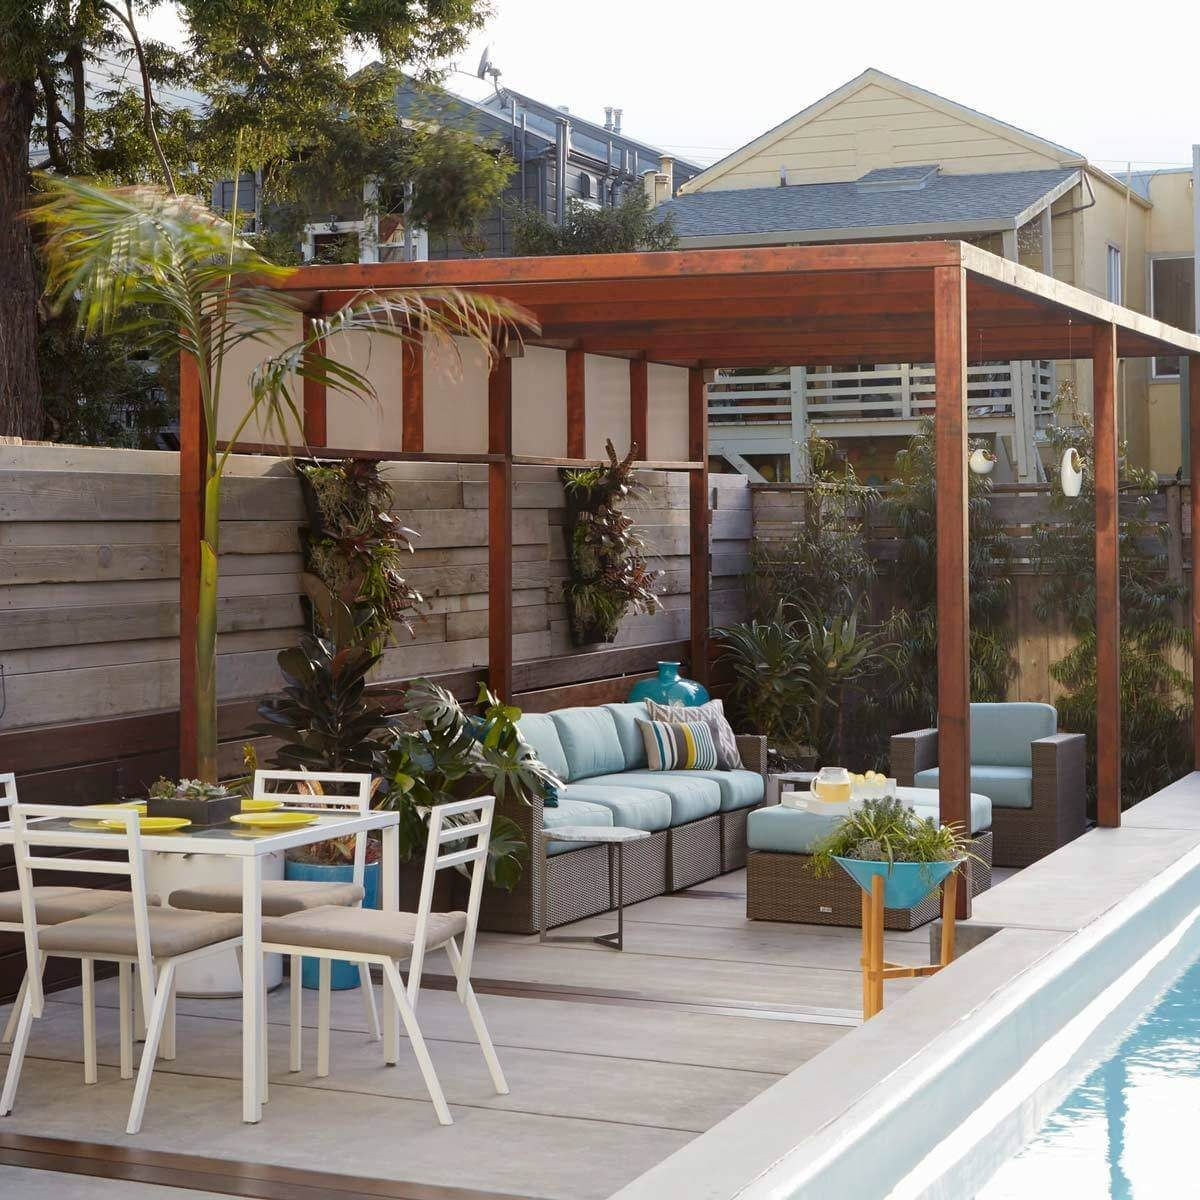 Poolside Patio with Pergola